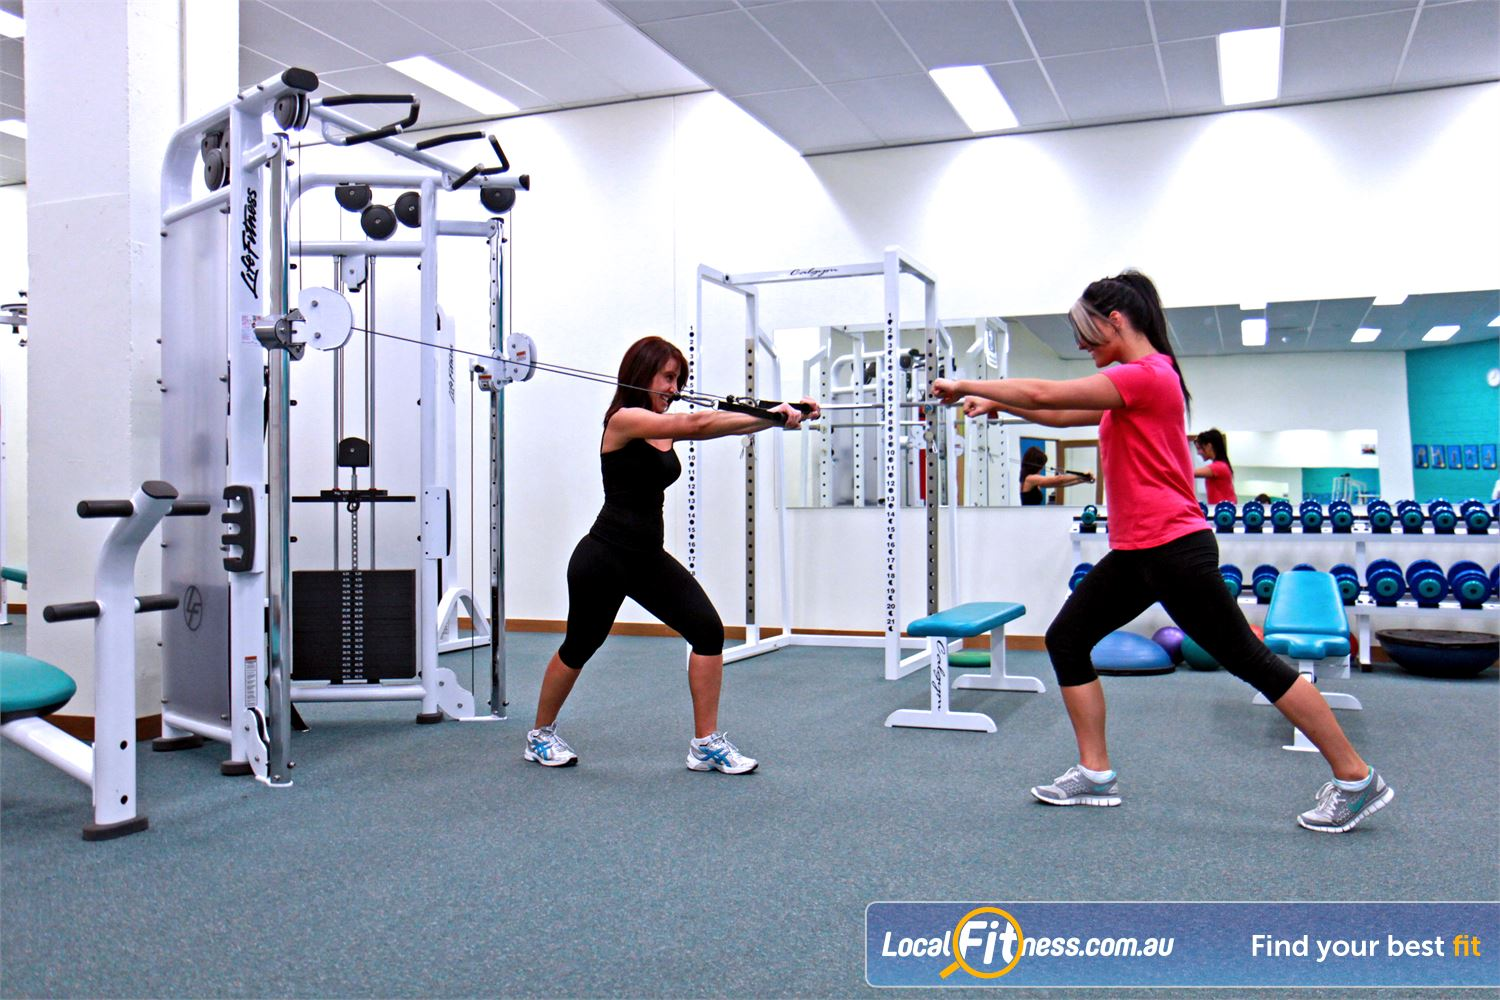 Fernwood Fitness Near Ruse We have the right Campbelltown gym equipment to help with women's weight loss and strength.